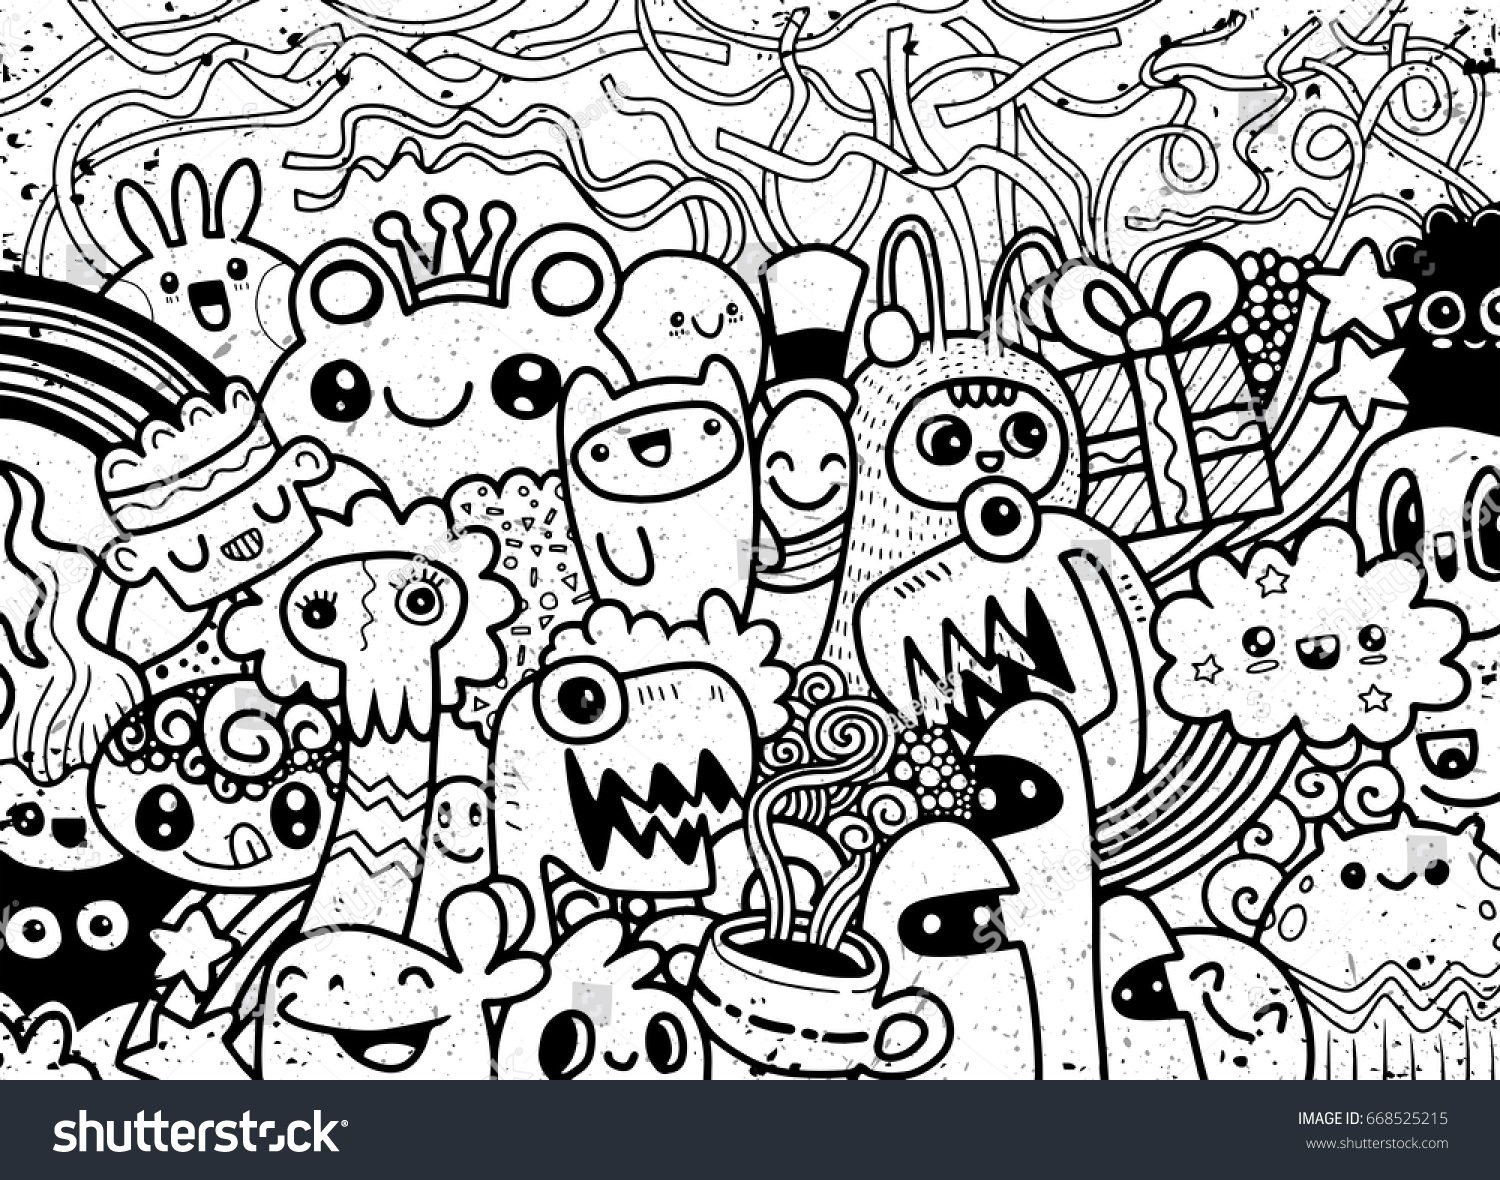 Line Drawing Monster : Hipster hand drawn crazy doodle monster stock vector